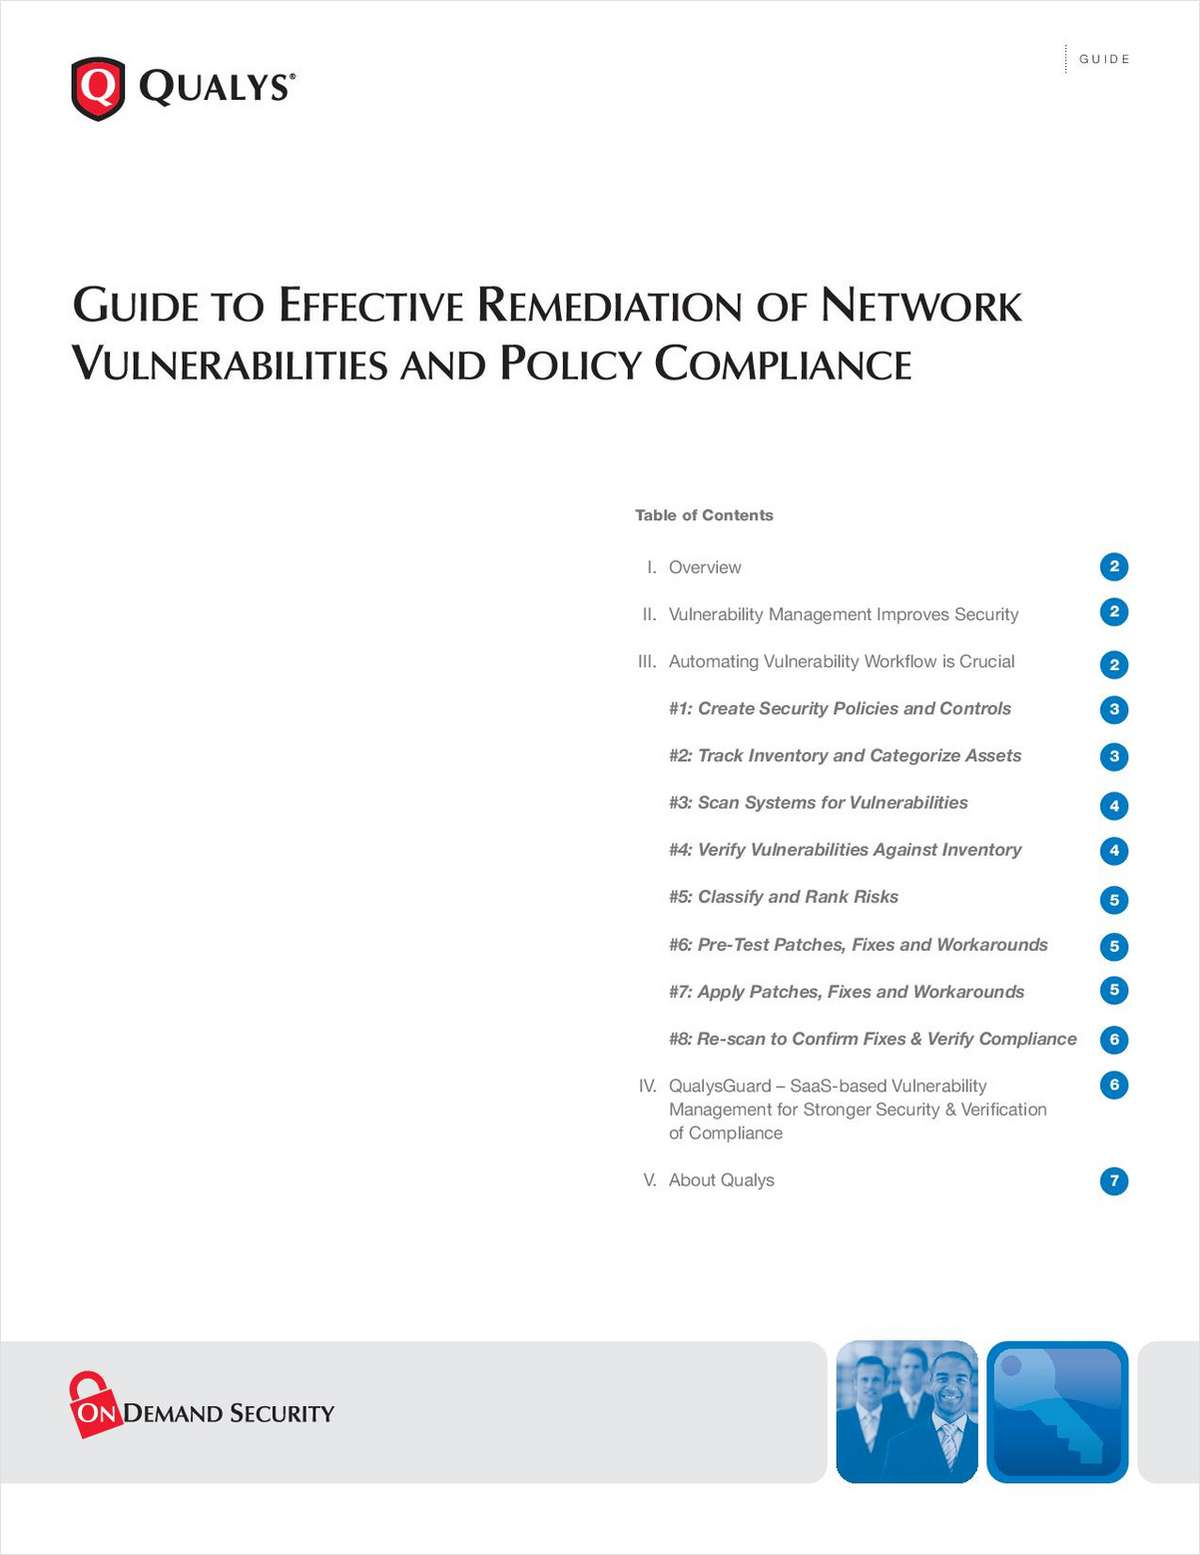 Guide to Effective Remediation of Network Vulnerabilities and Policy Compliance